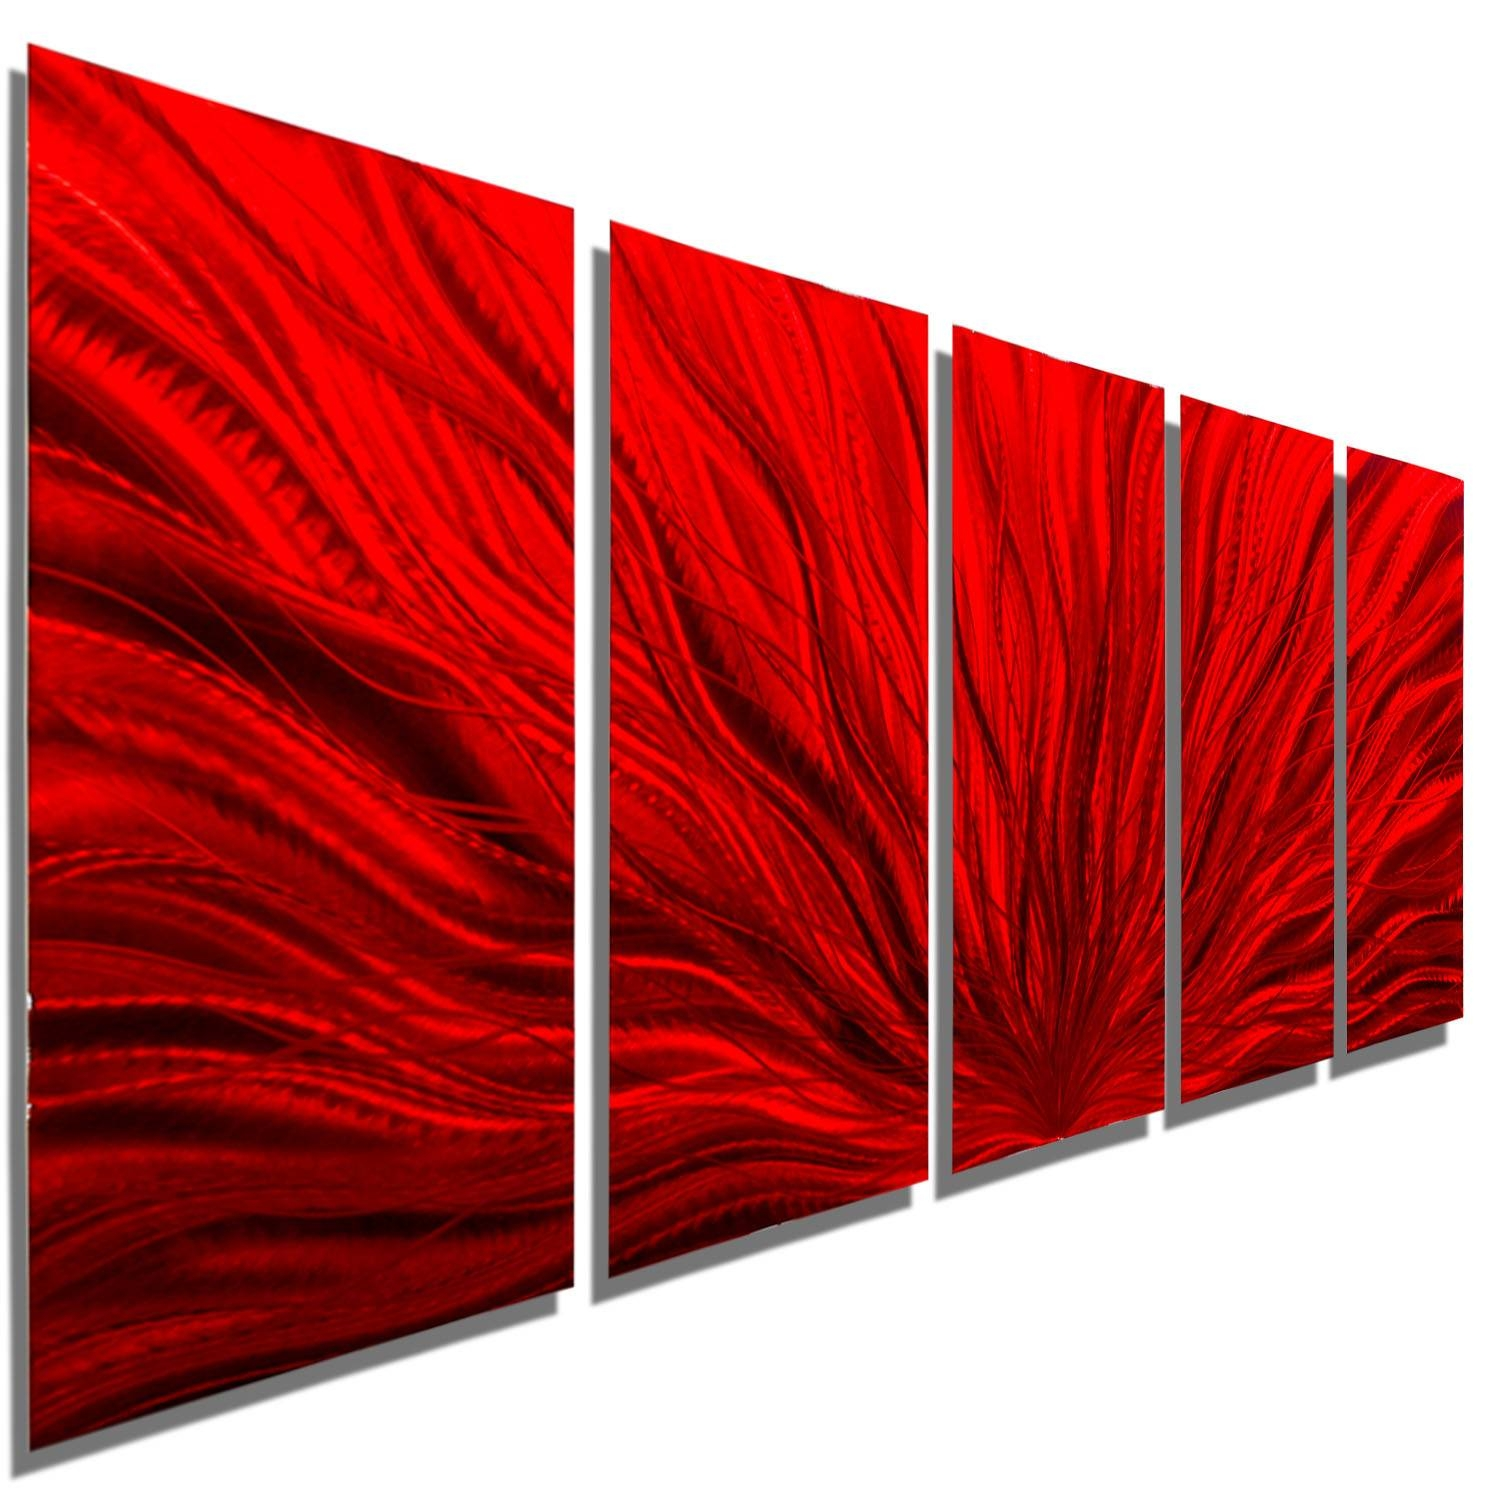 "Red Plumage – Modern Abstract Metal Wall Artjon Allen – 64"" X 24"" For 2017 Red Metal Wall Art (View 17 of 20)"